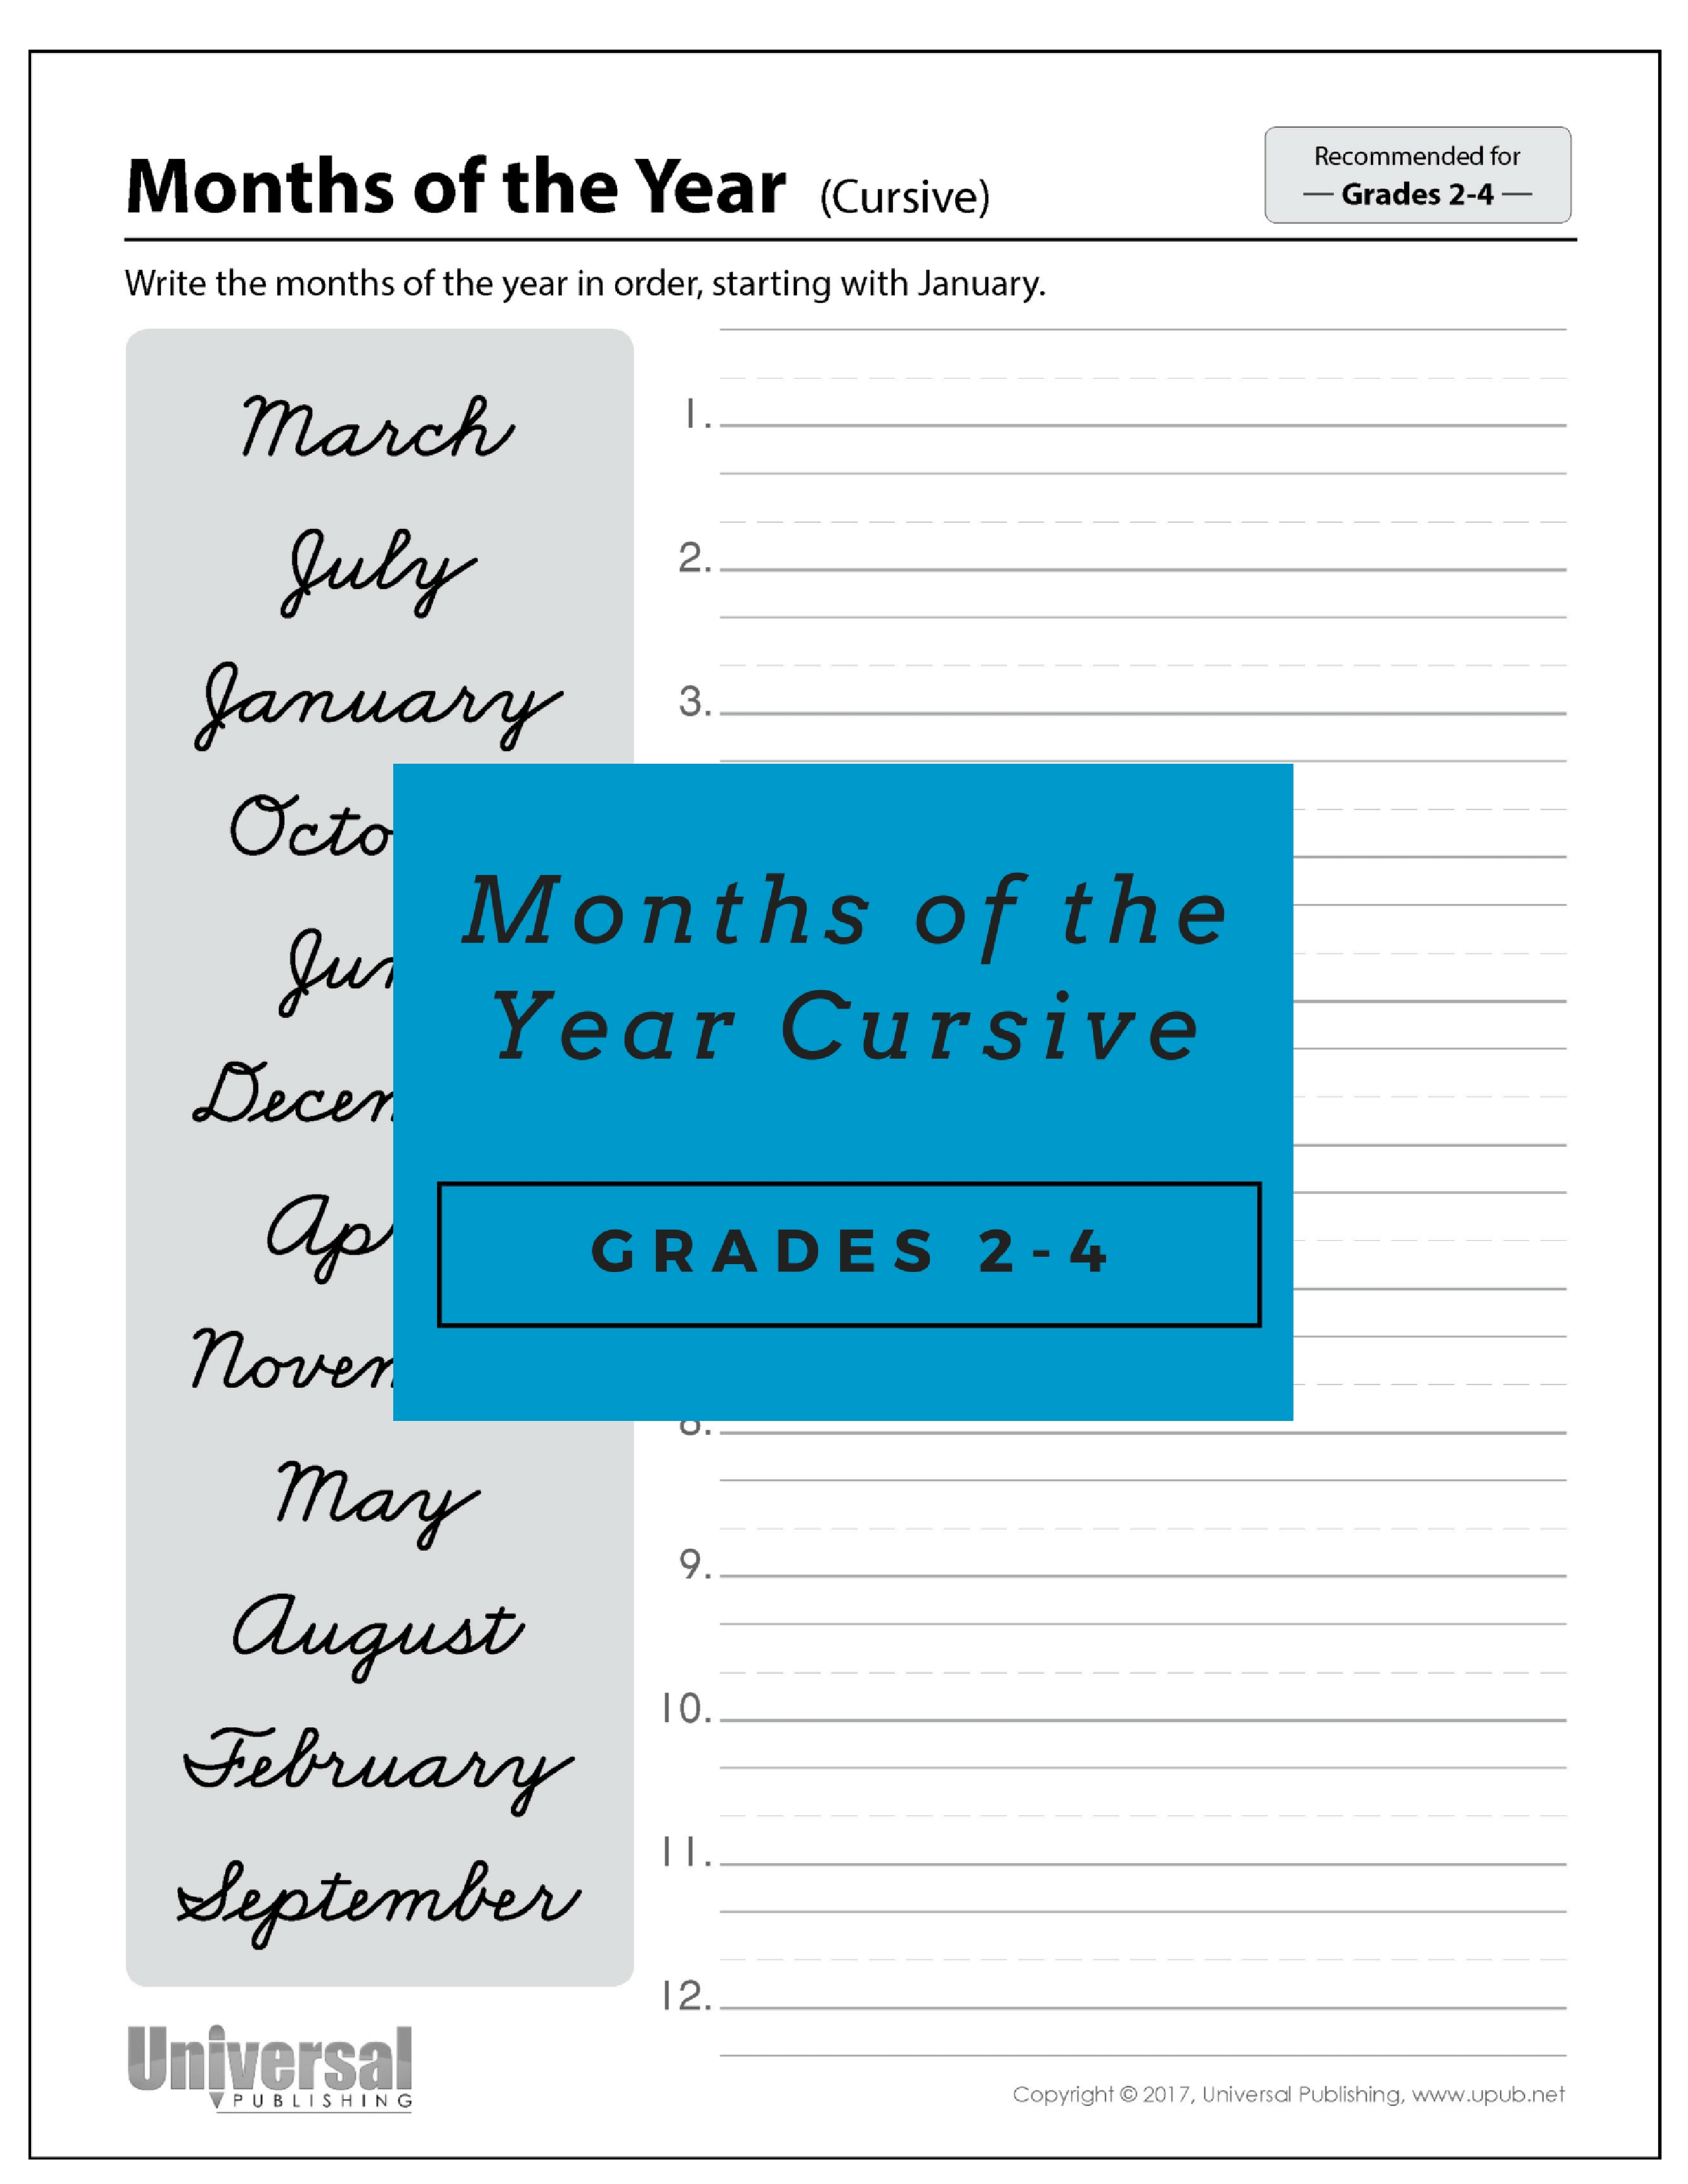 Awesome Cursive Handwriting Worksheets For Older Students